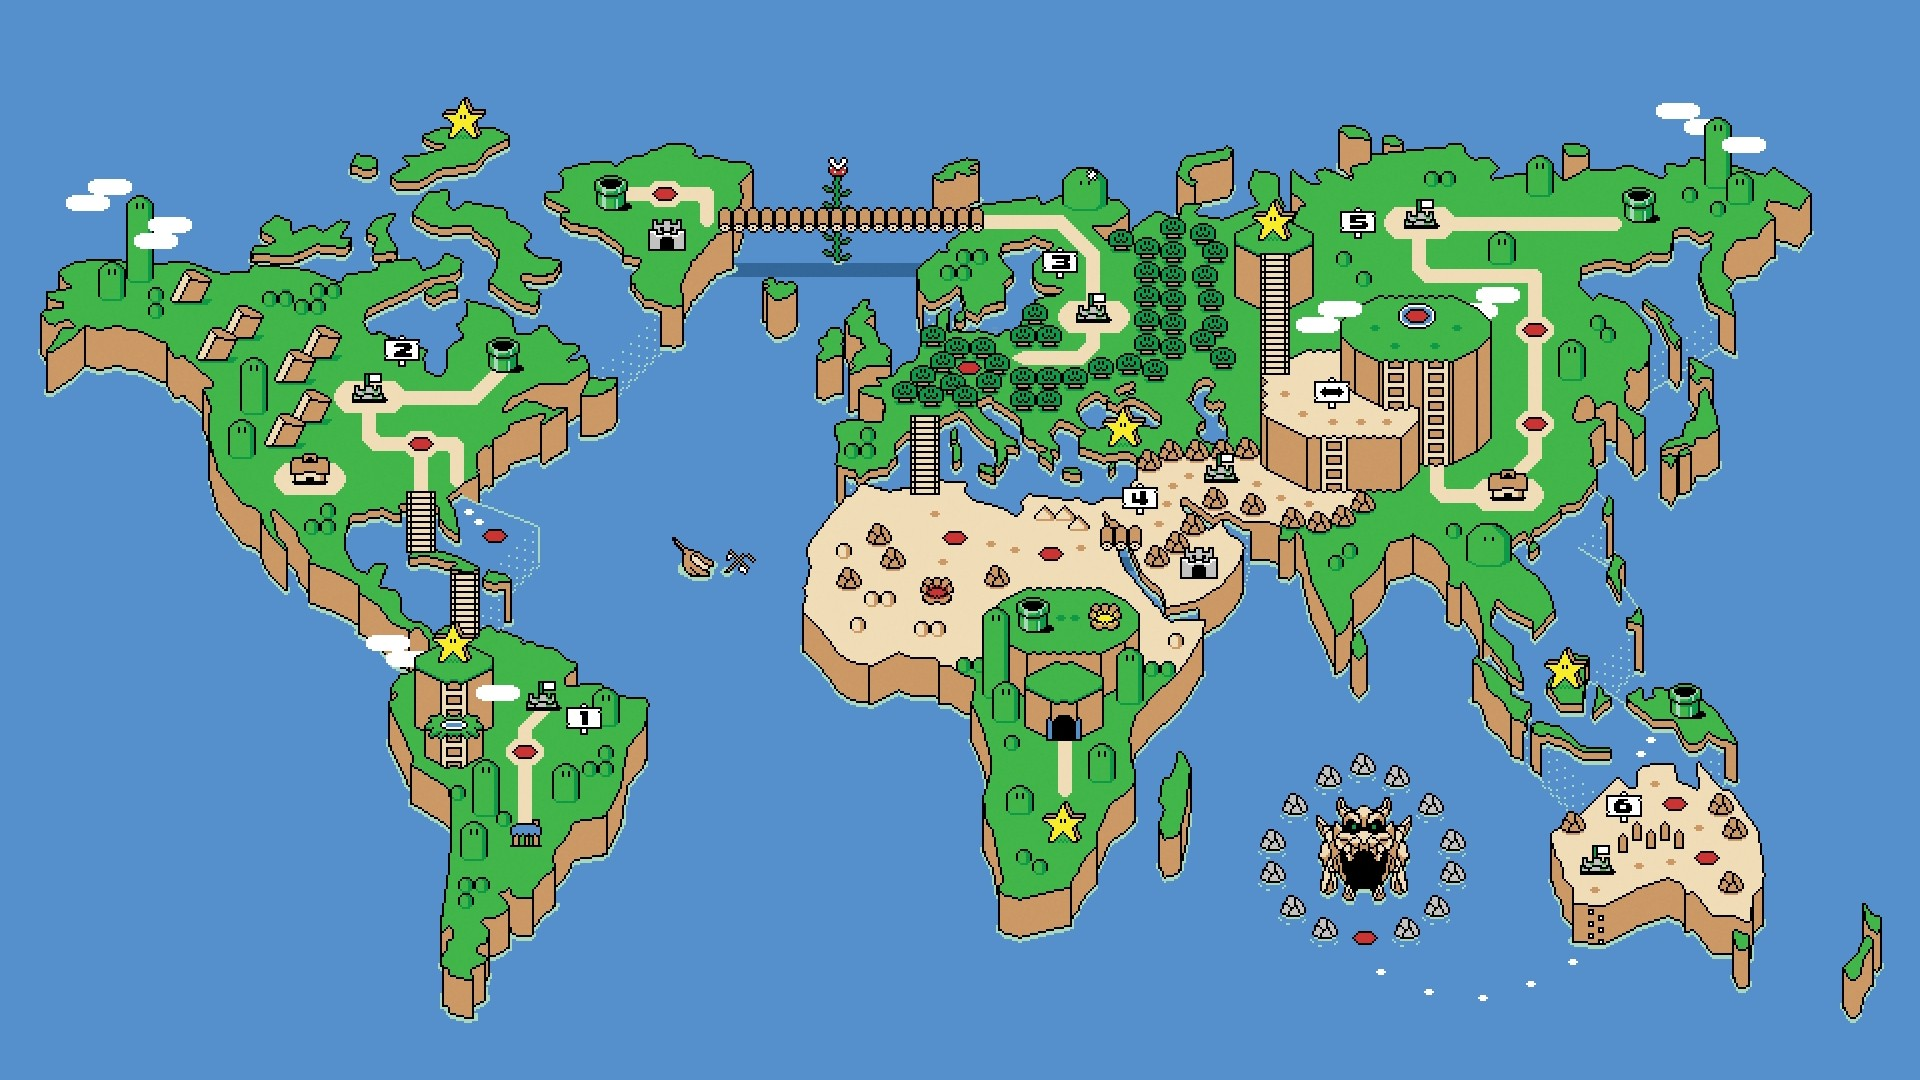 Super mario bros live wallpaper 61 images 1920x1080 super mario world map wallpaper 4703 4950 hd gumiabroncs Image collections